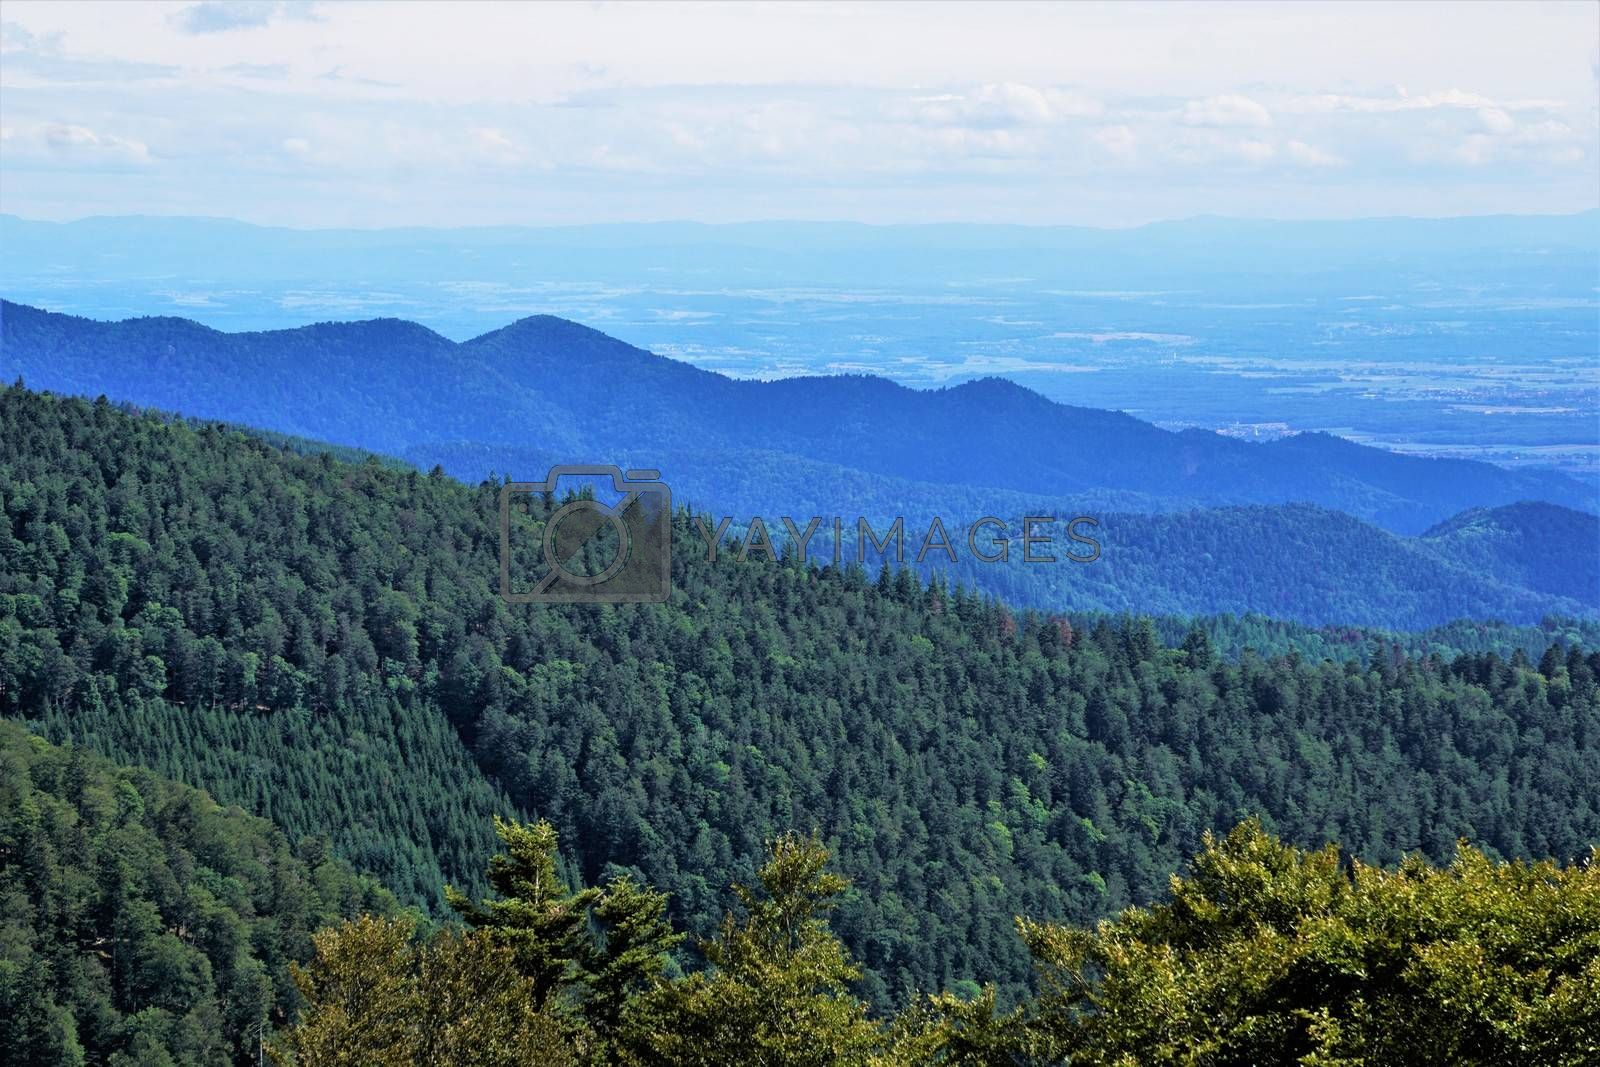 View over the hills of the Vosges to the valley of the Rhine river